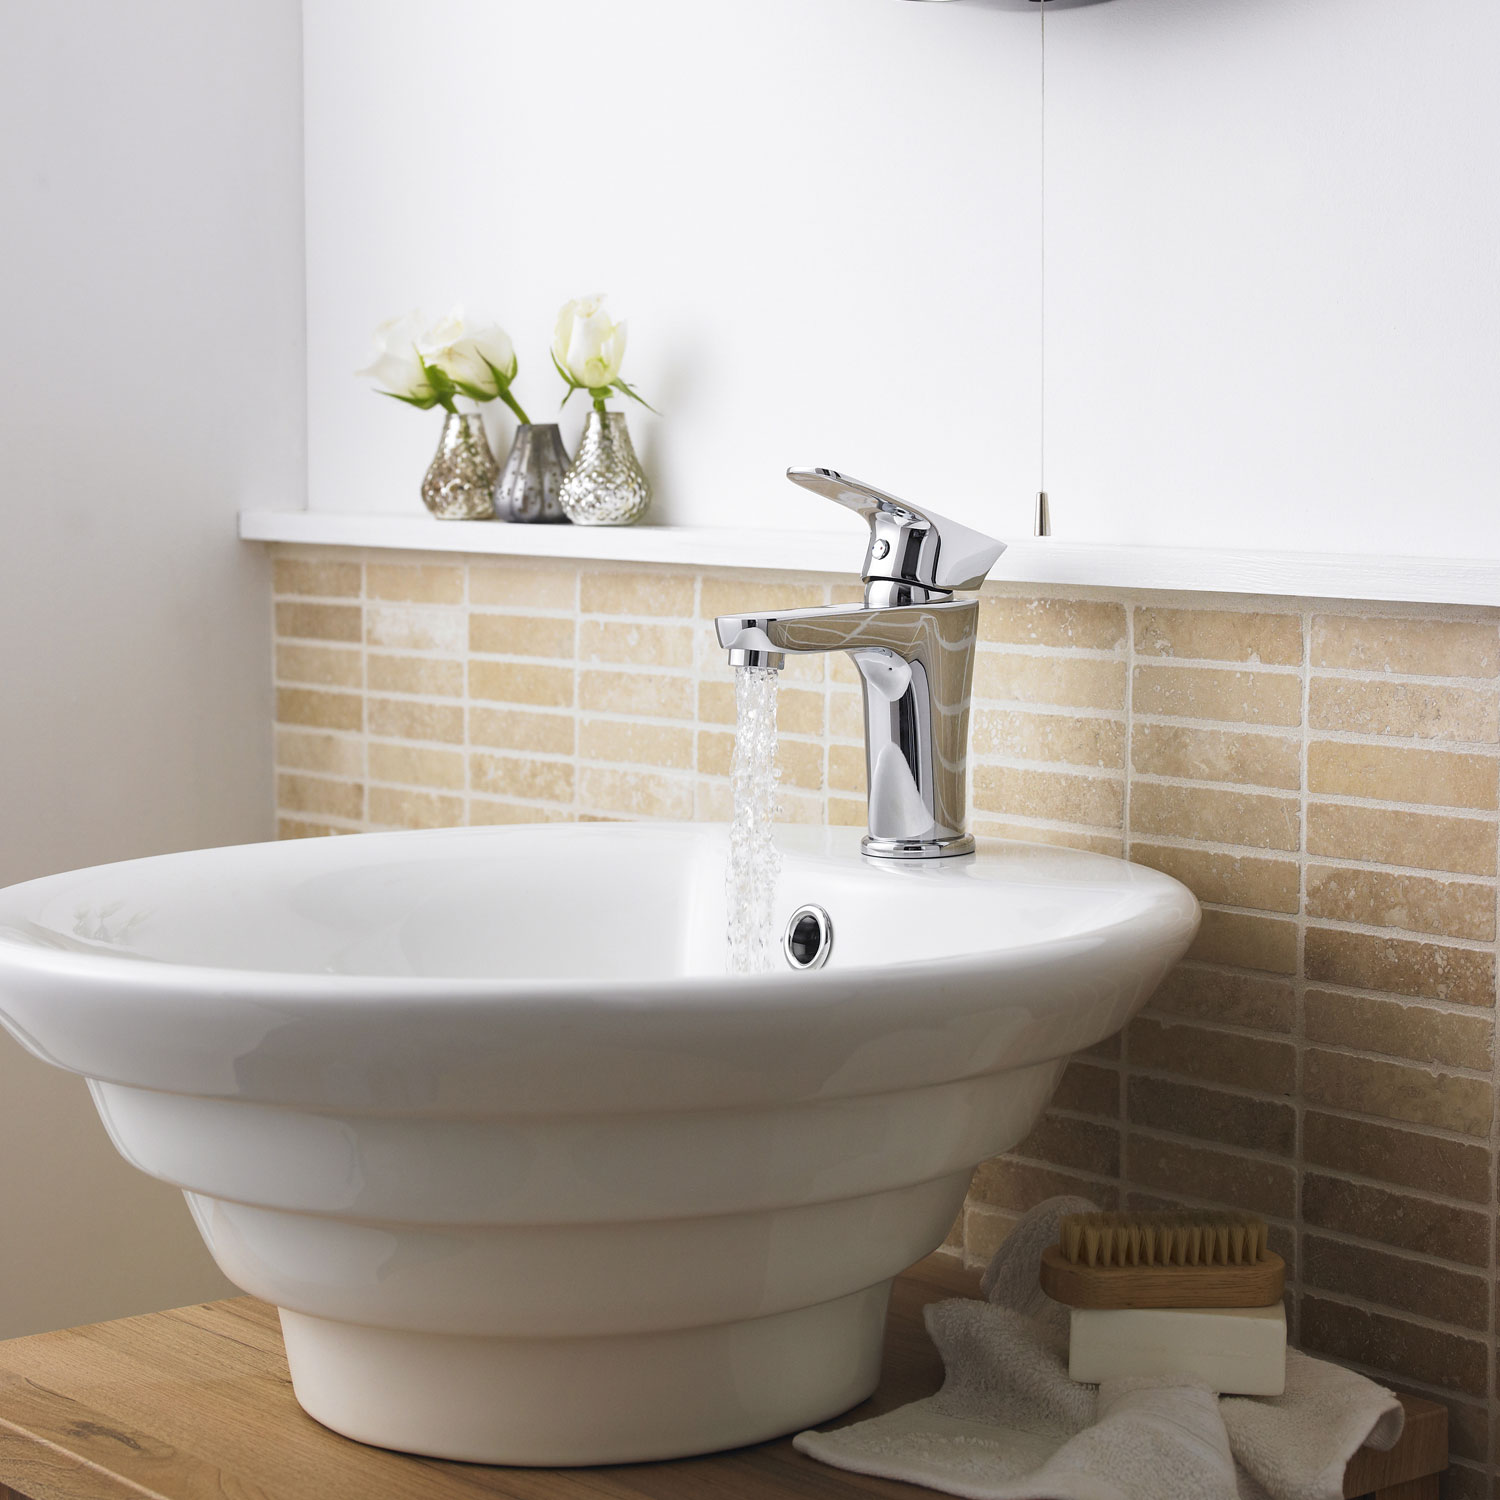 Premier Vessels Sit-On Countertop Basin 460mm Diameter - 1 Tap Hole